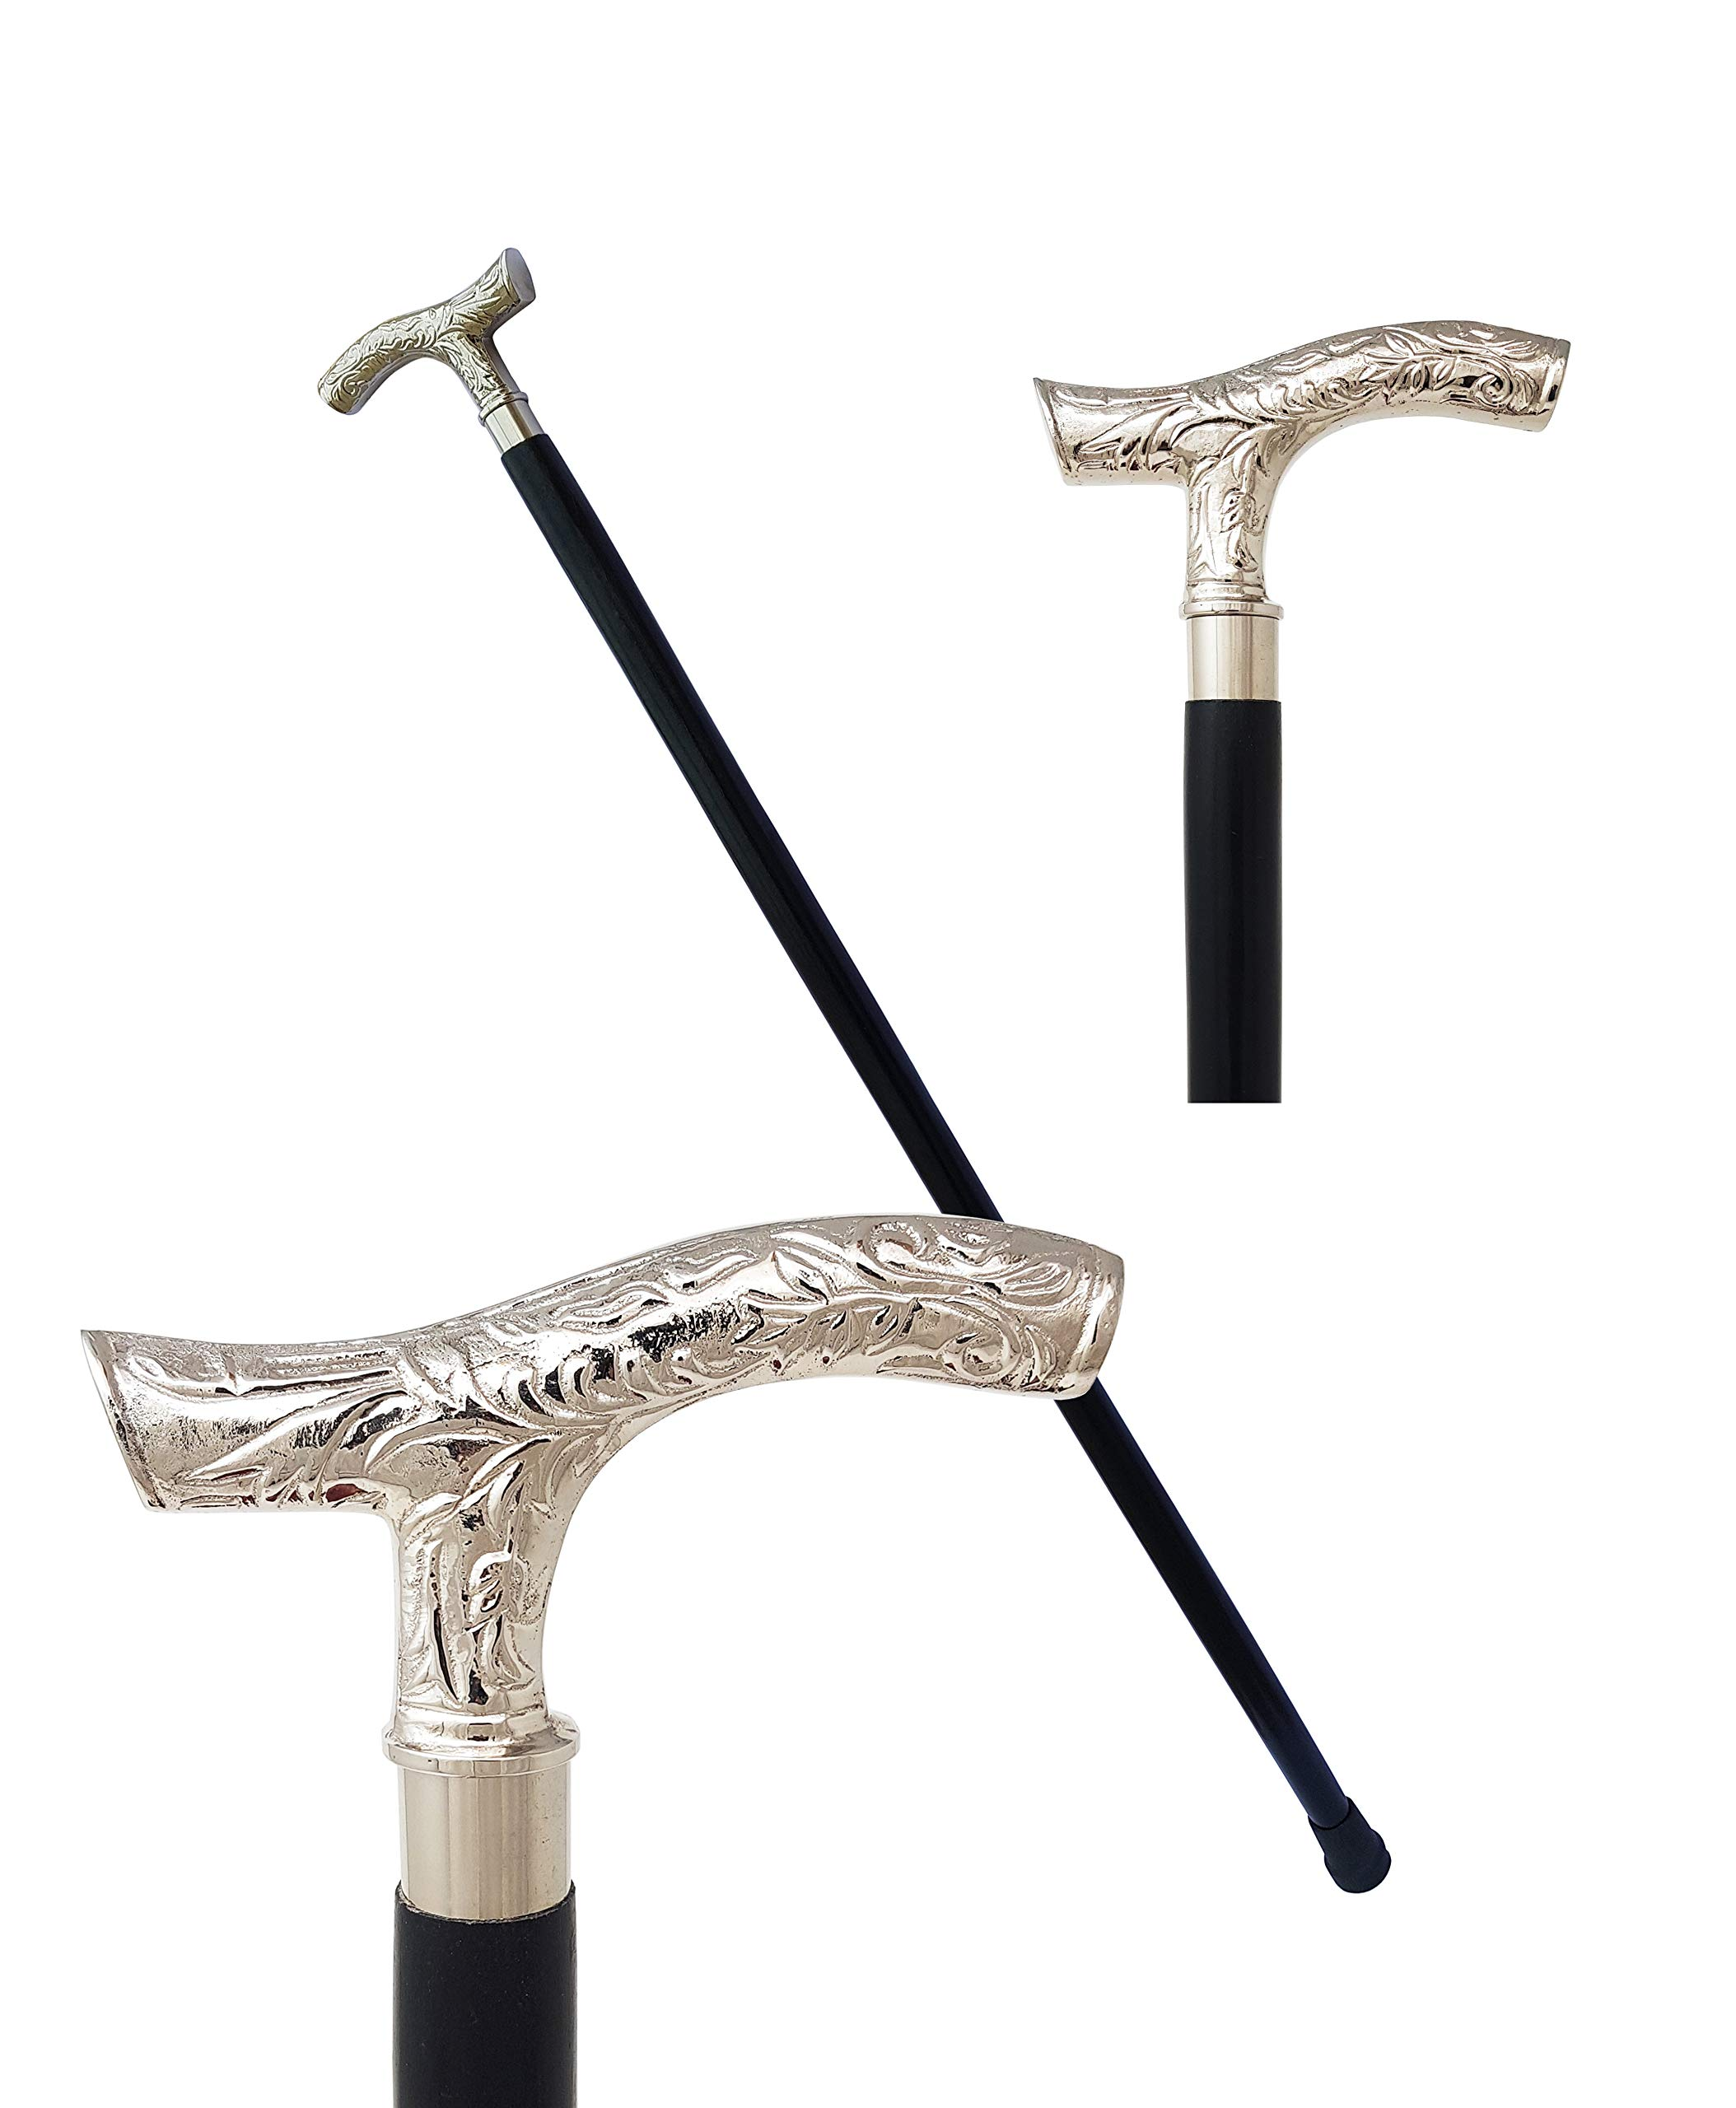 The New Antique Store - Brass Derby Handle Walking Cane Wooden Cane Stick - Made of Rosewood & Brass (Ornate Chrome)